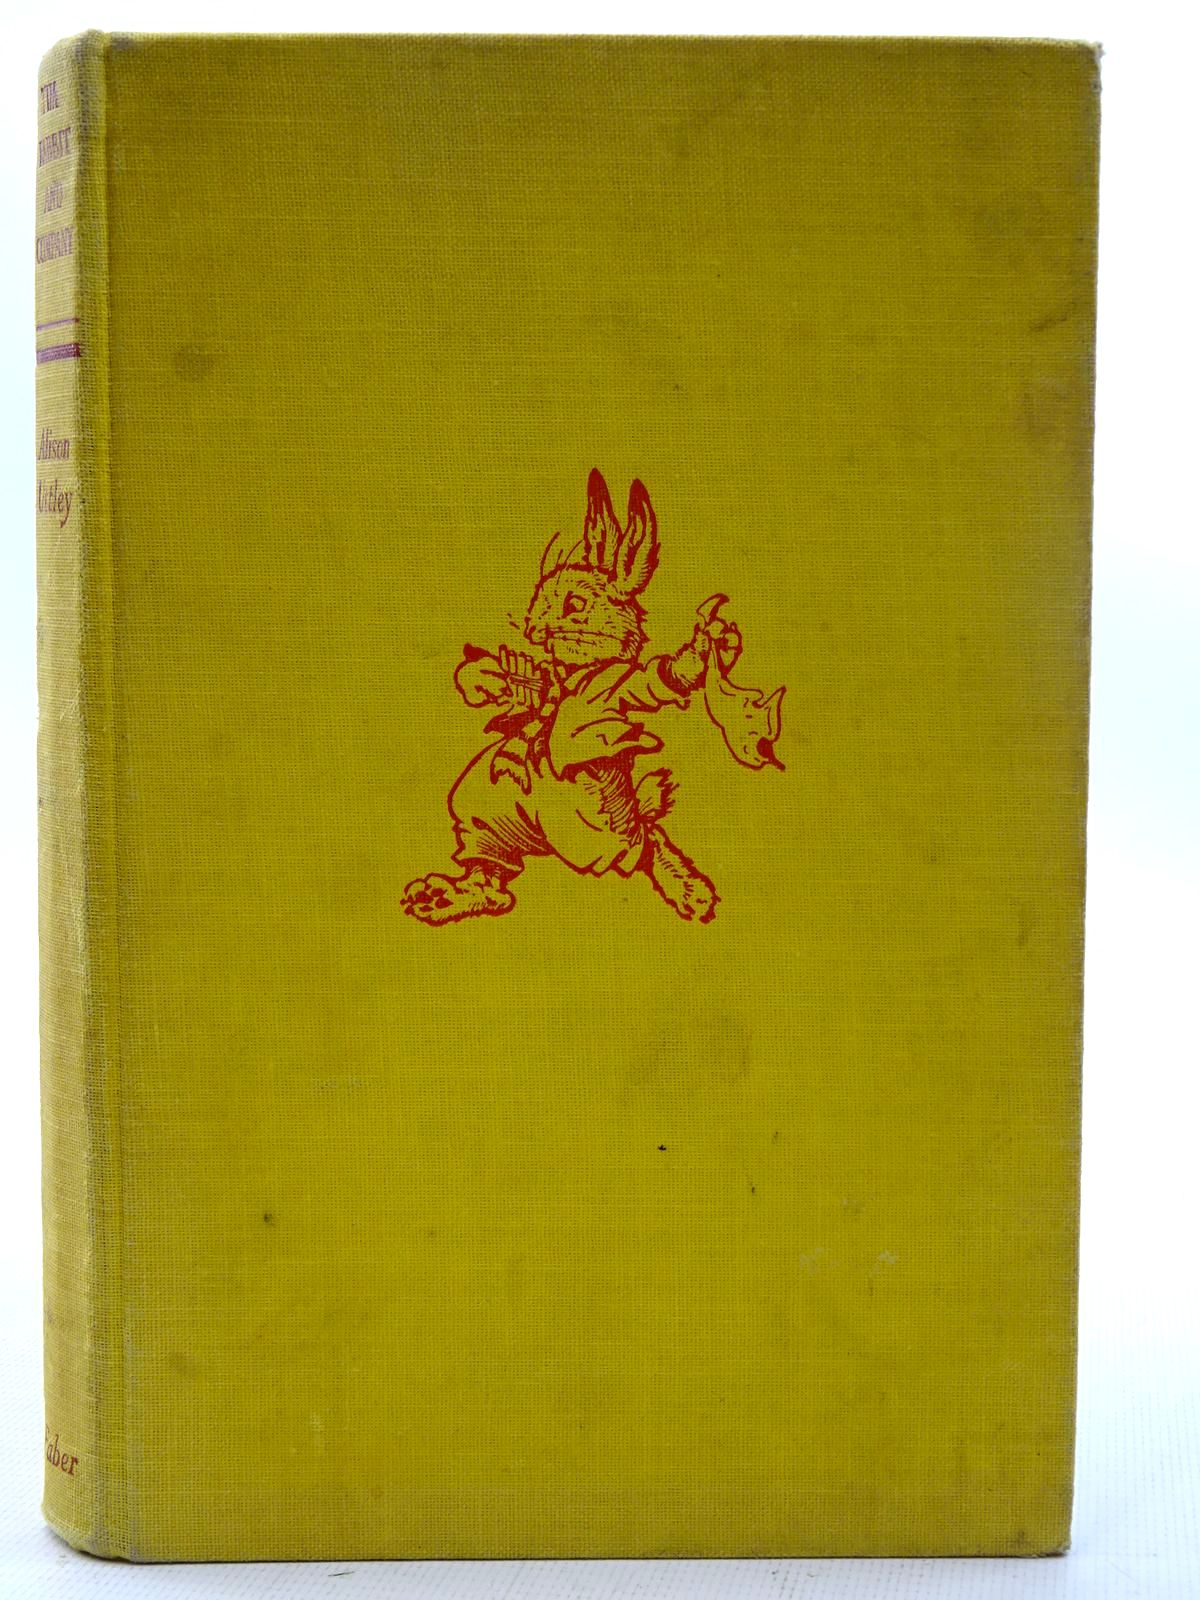 Photo of TIM RABBIT AND COMPANY written by Uttley, Alison illustrated by Kennedy, A.E. published by Faber & Faber (STOCK CODE: 2126258)  for sale by Stella & Rose's Books